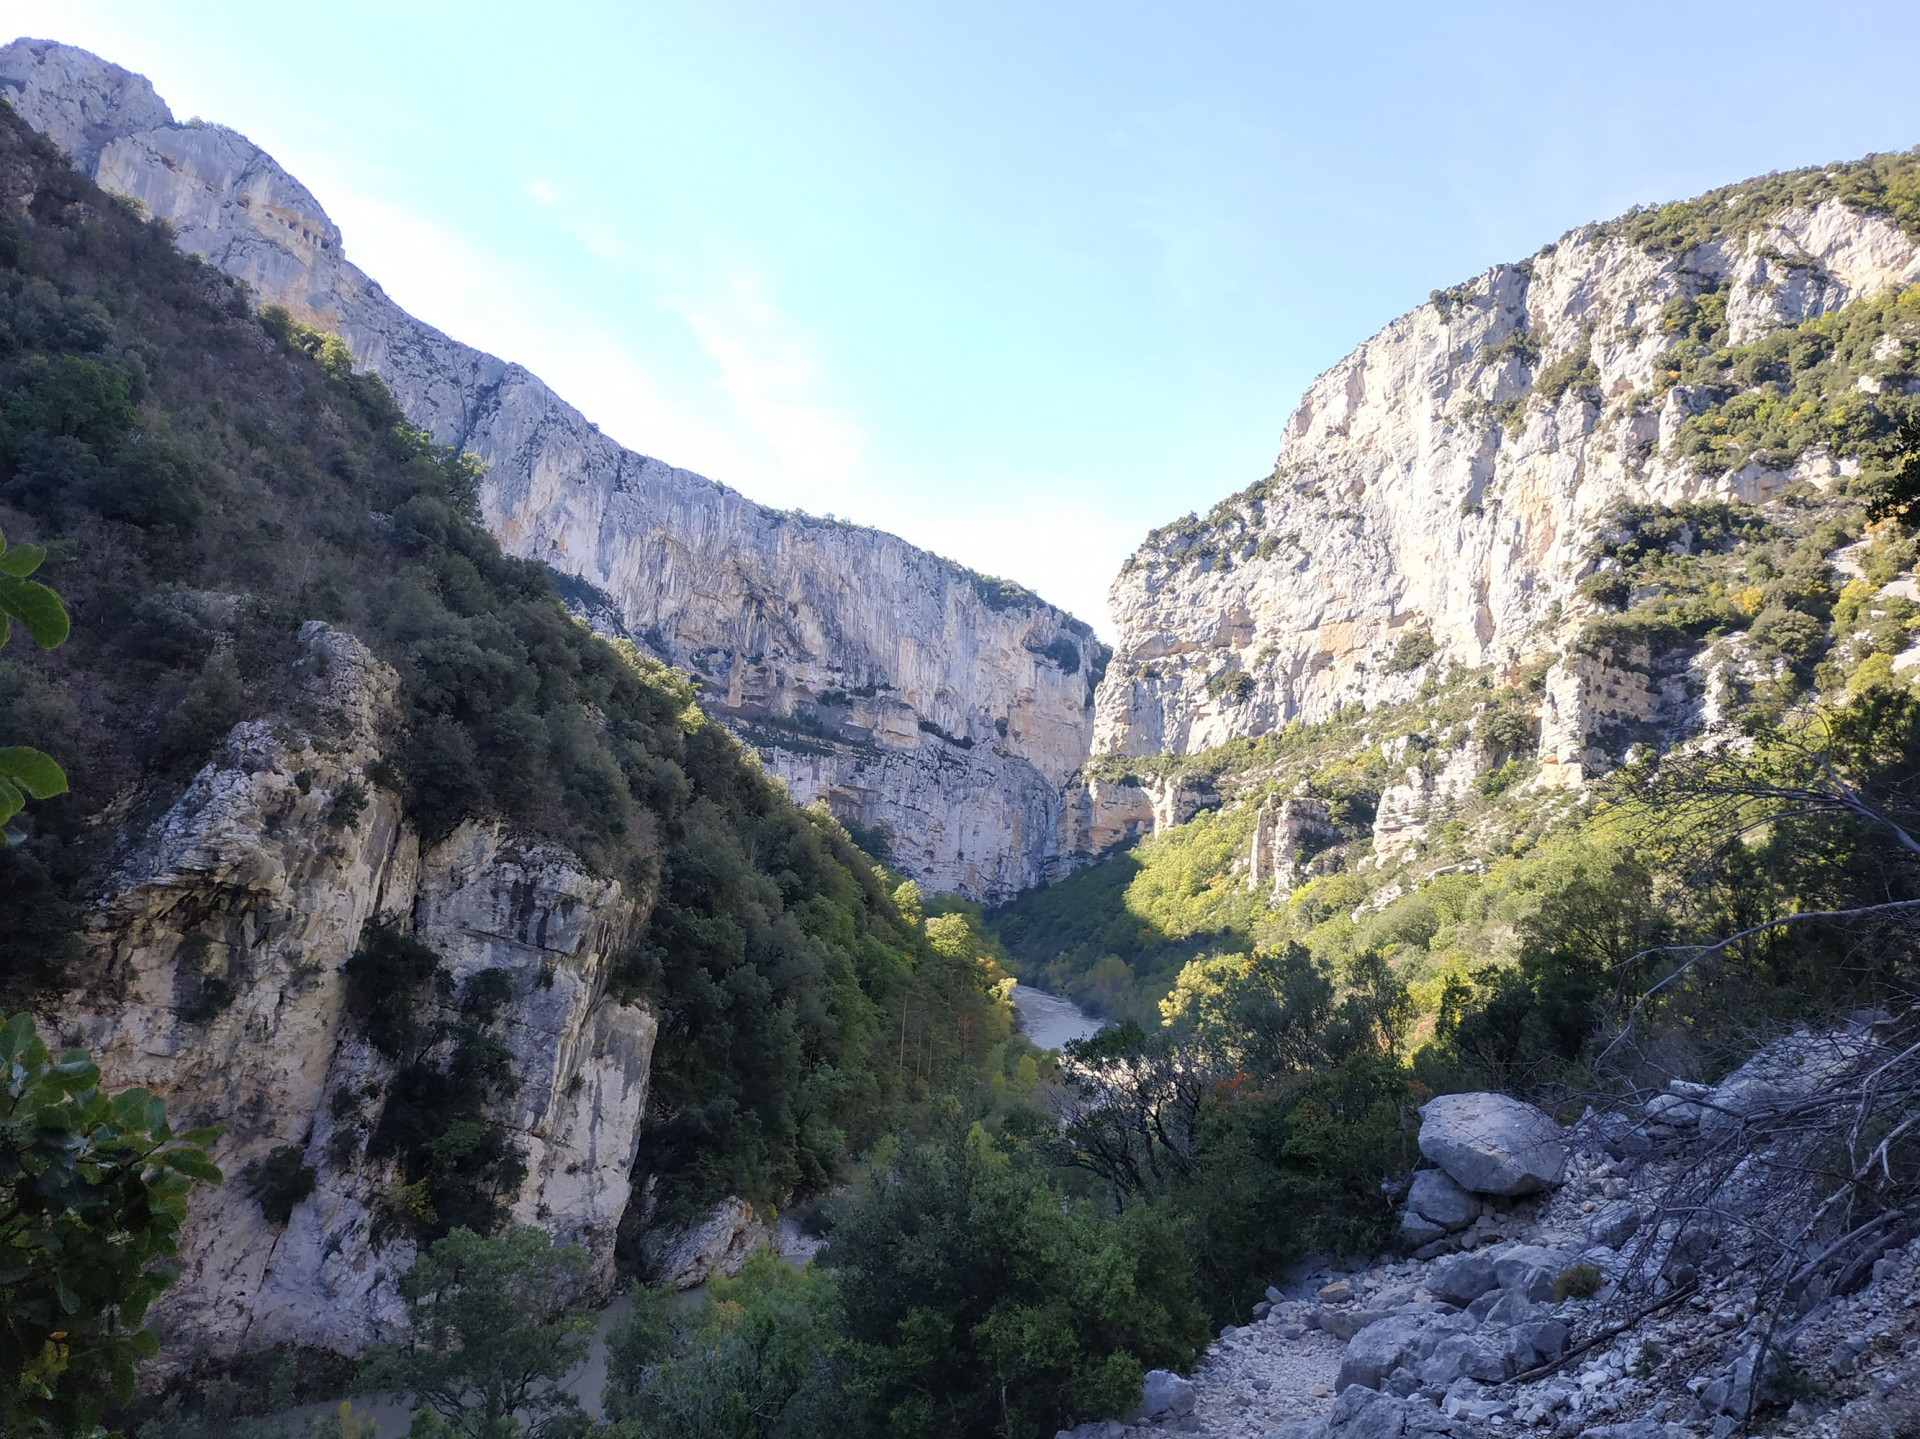 Gorges du Verdon, Octobre